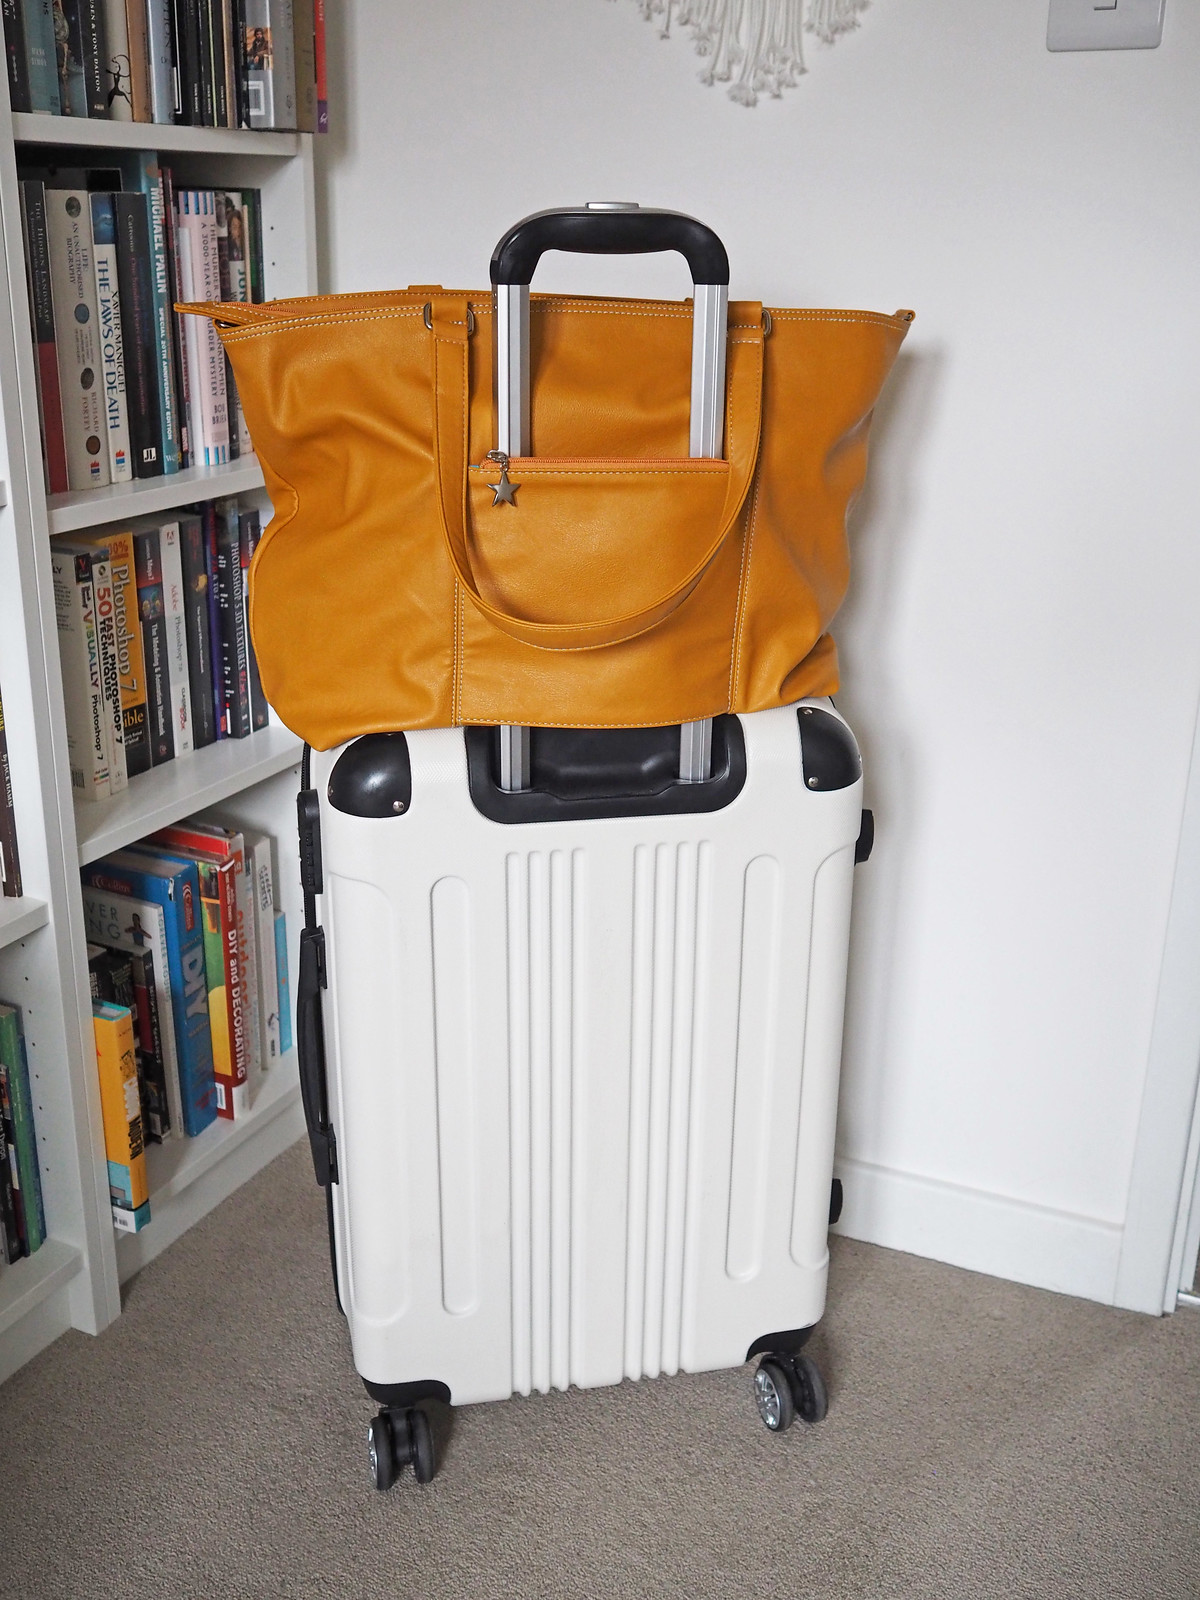 An Ingenious Travel Hand Luggage Bag That Lets You Go Hands-Free: The Mia Tui Jennie Bag | Not Dressed As Lamb, Over 40 Style Blog